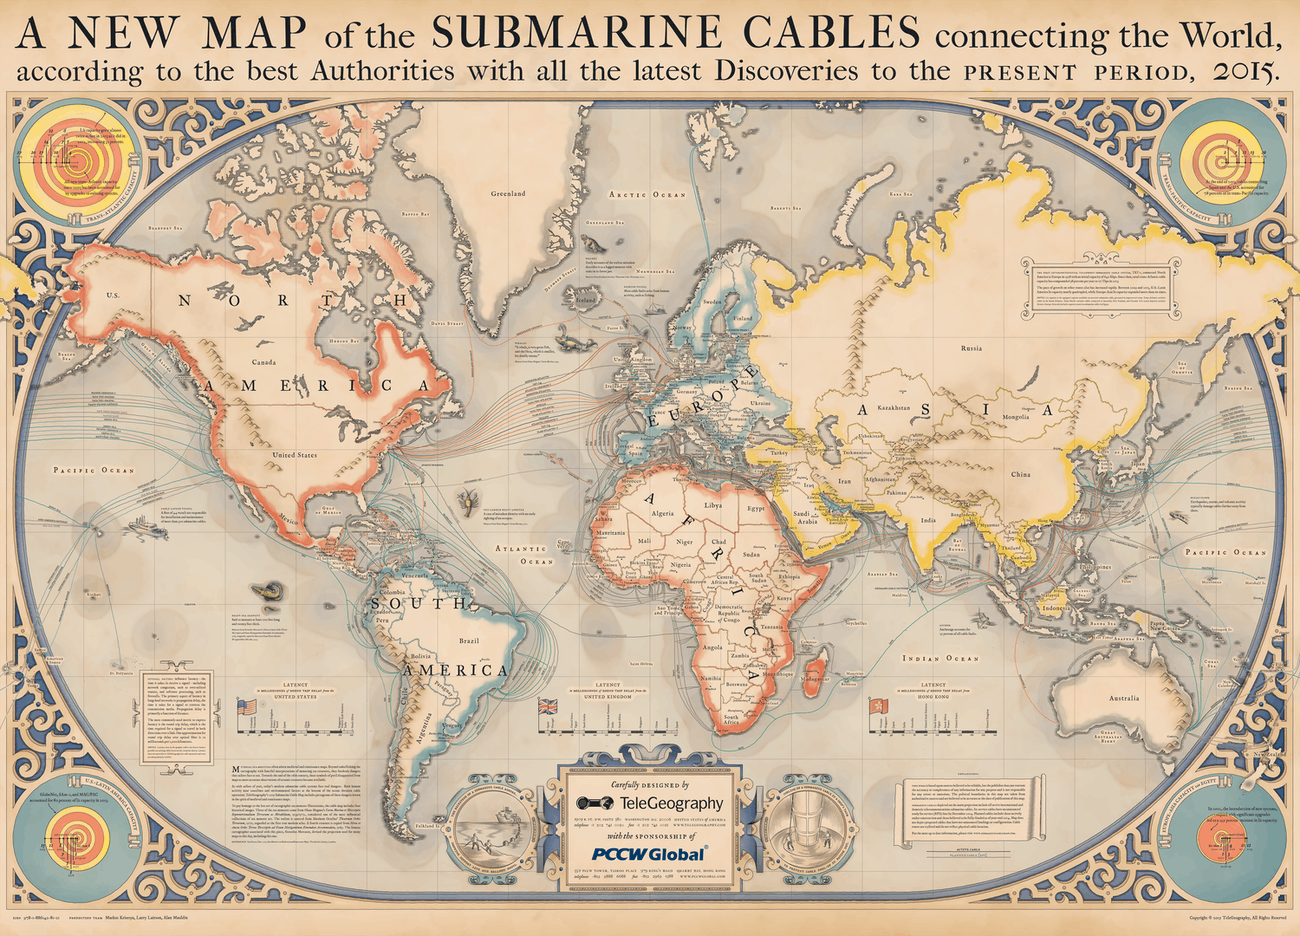 Map Shows Undersea Cable Locations That Are Critical for the